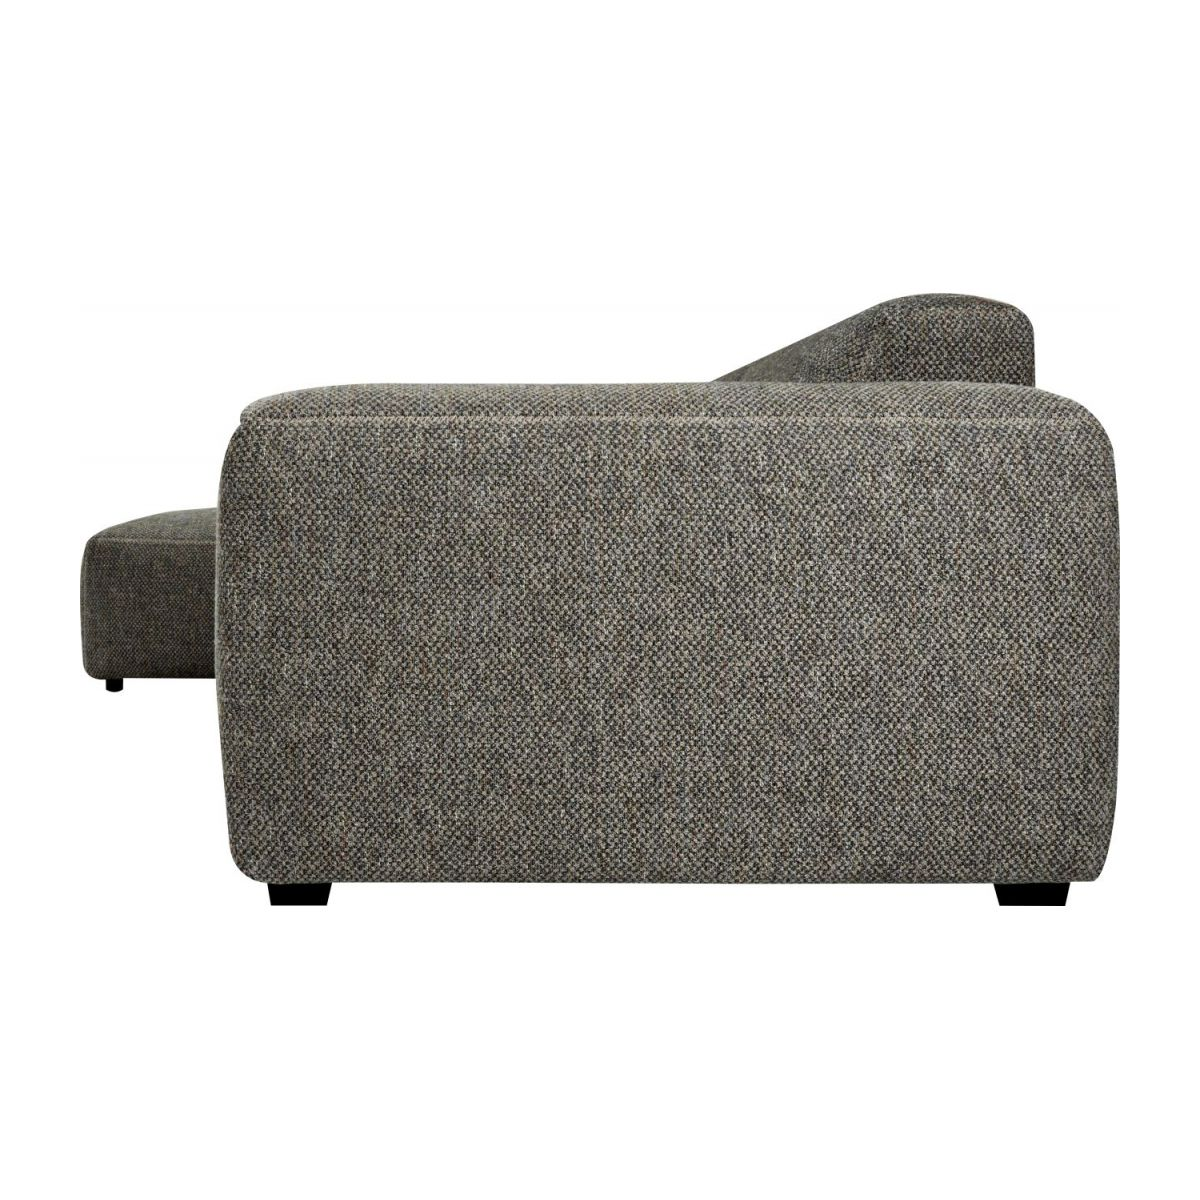 Sofá 3 plazas con chaiselongue izquierda de tela Bellagio night black n°4